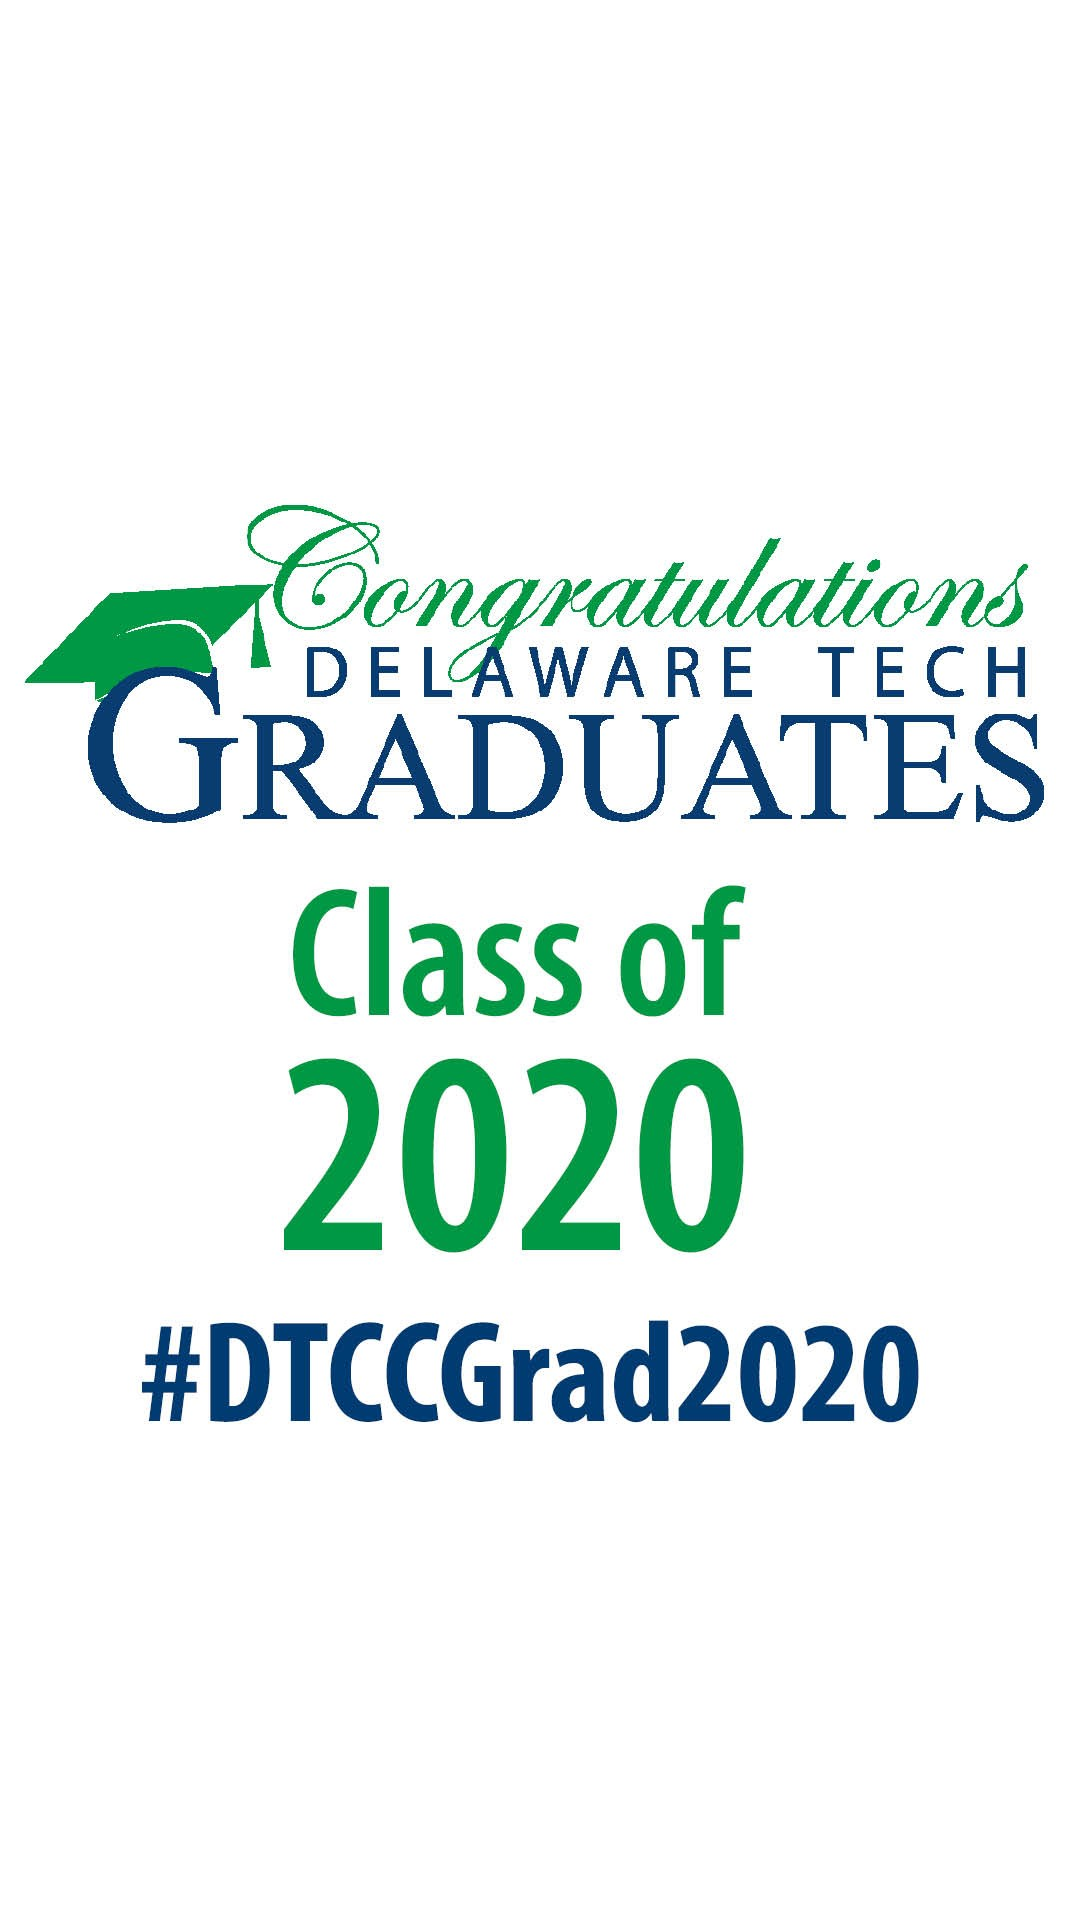 Instagram story graphic with text that says Congratulations Delaware Tech Graduates Class of 2020